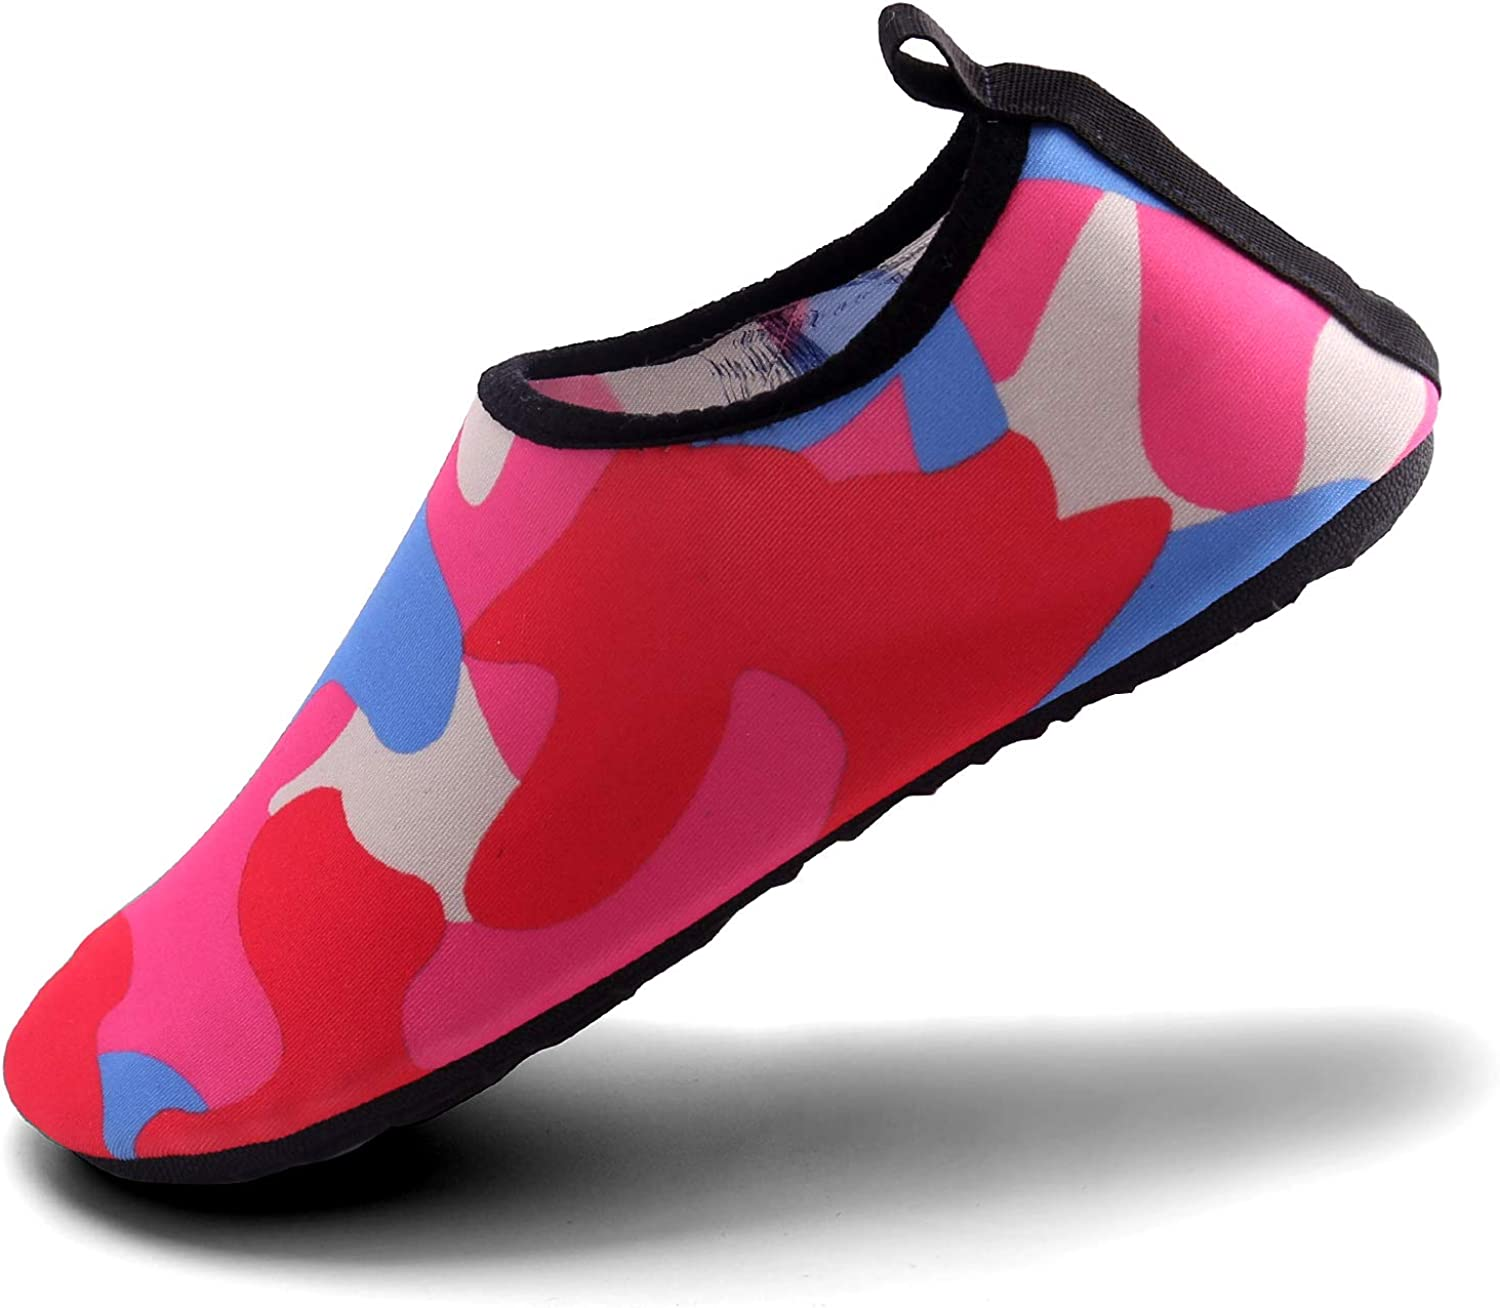 Aslipper Womens and Mens Summer Outdoor Water shoes Aqua Socks for Beach Swim Surf Yoga Exercise (S(W 5.5-6.5,M 5-5.5), Pink2)